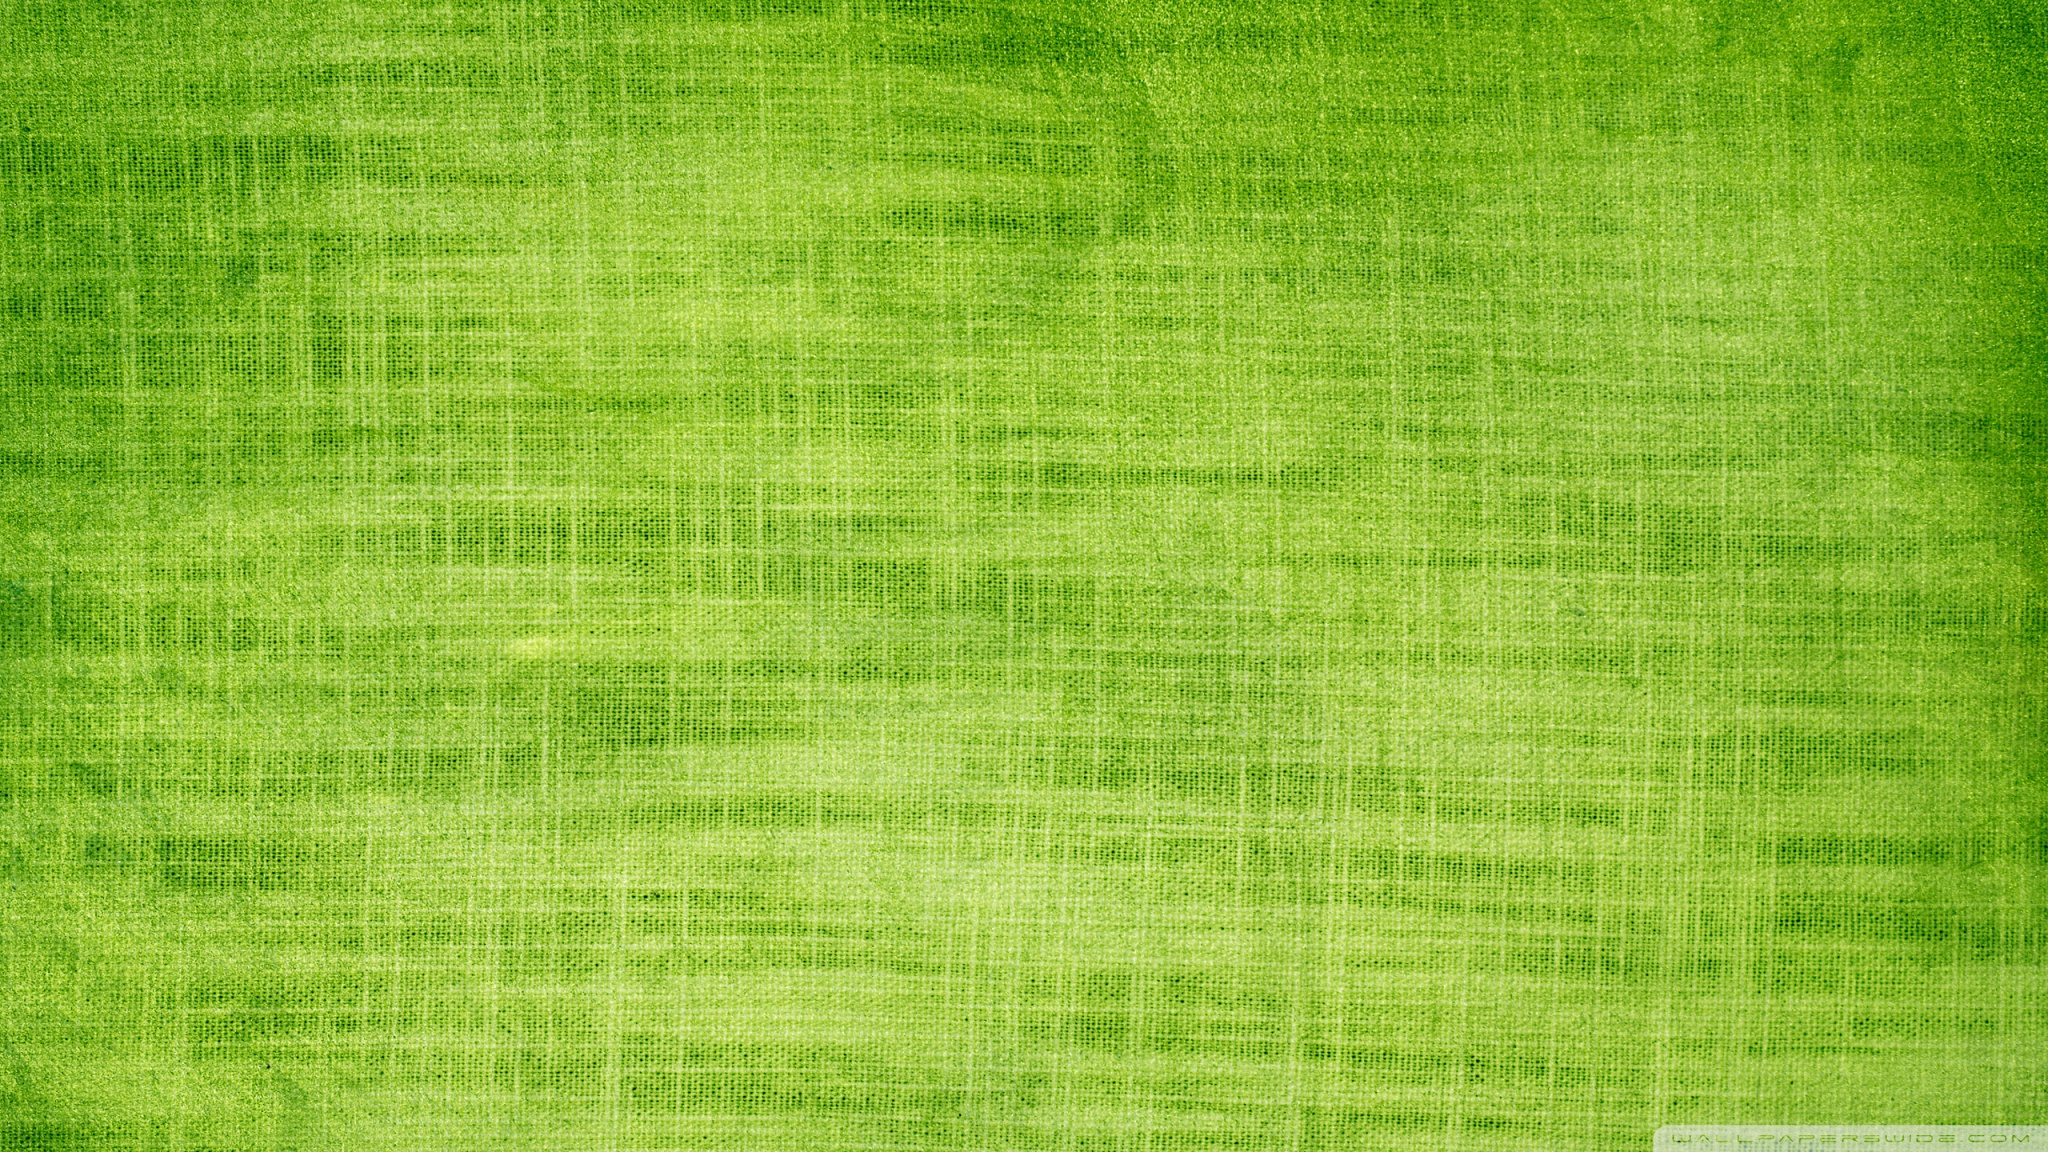 Green Fabric Wallpaper